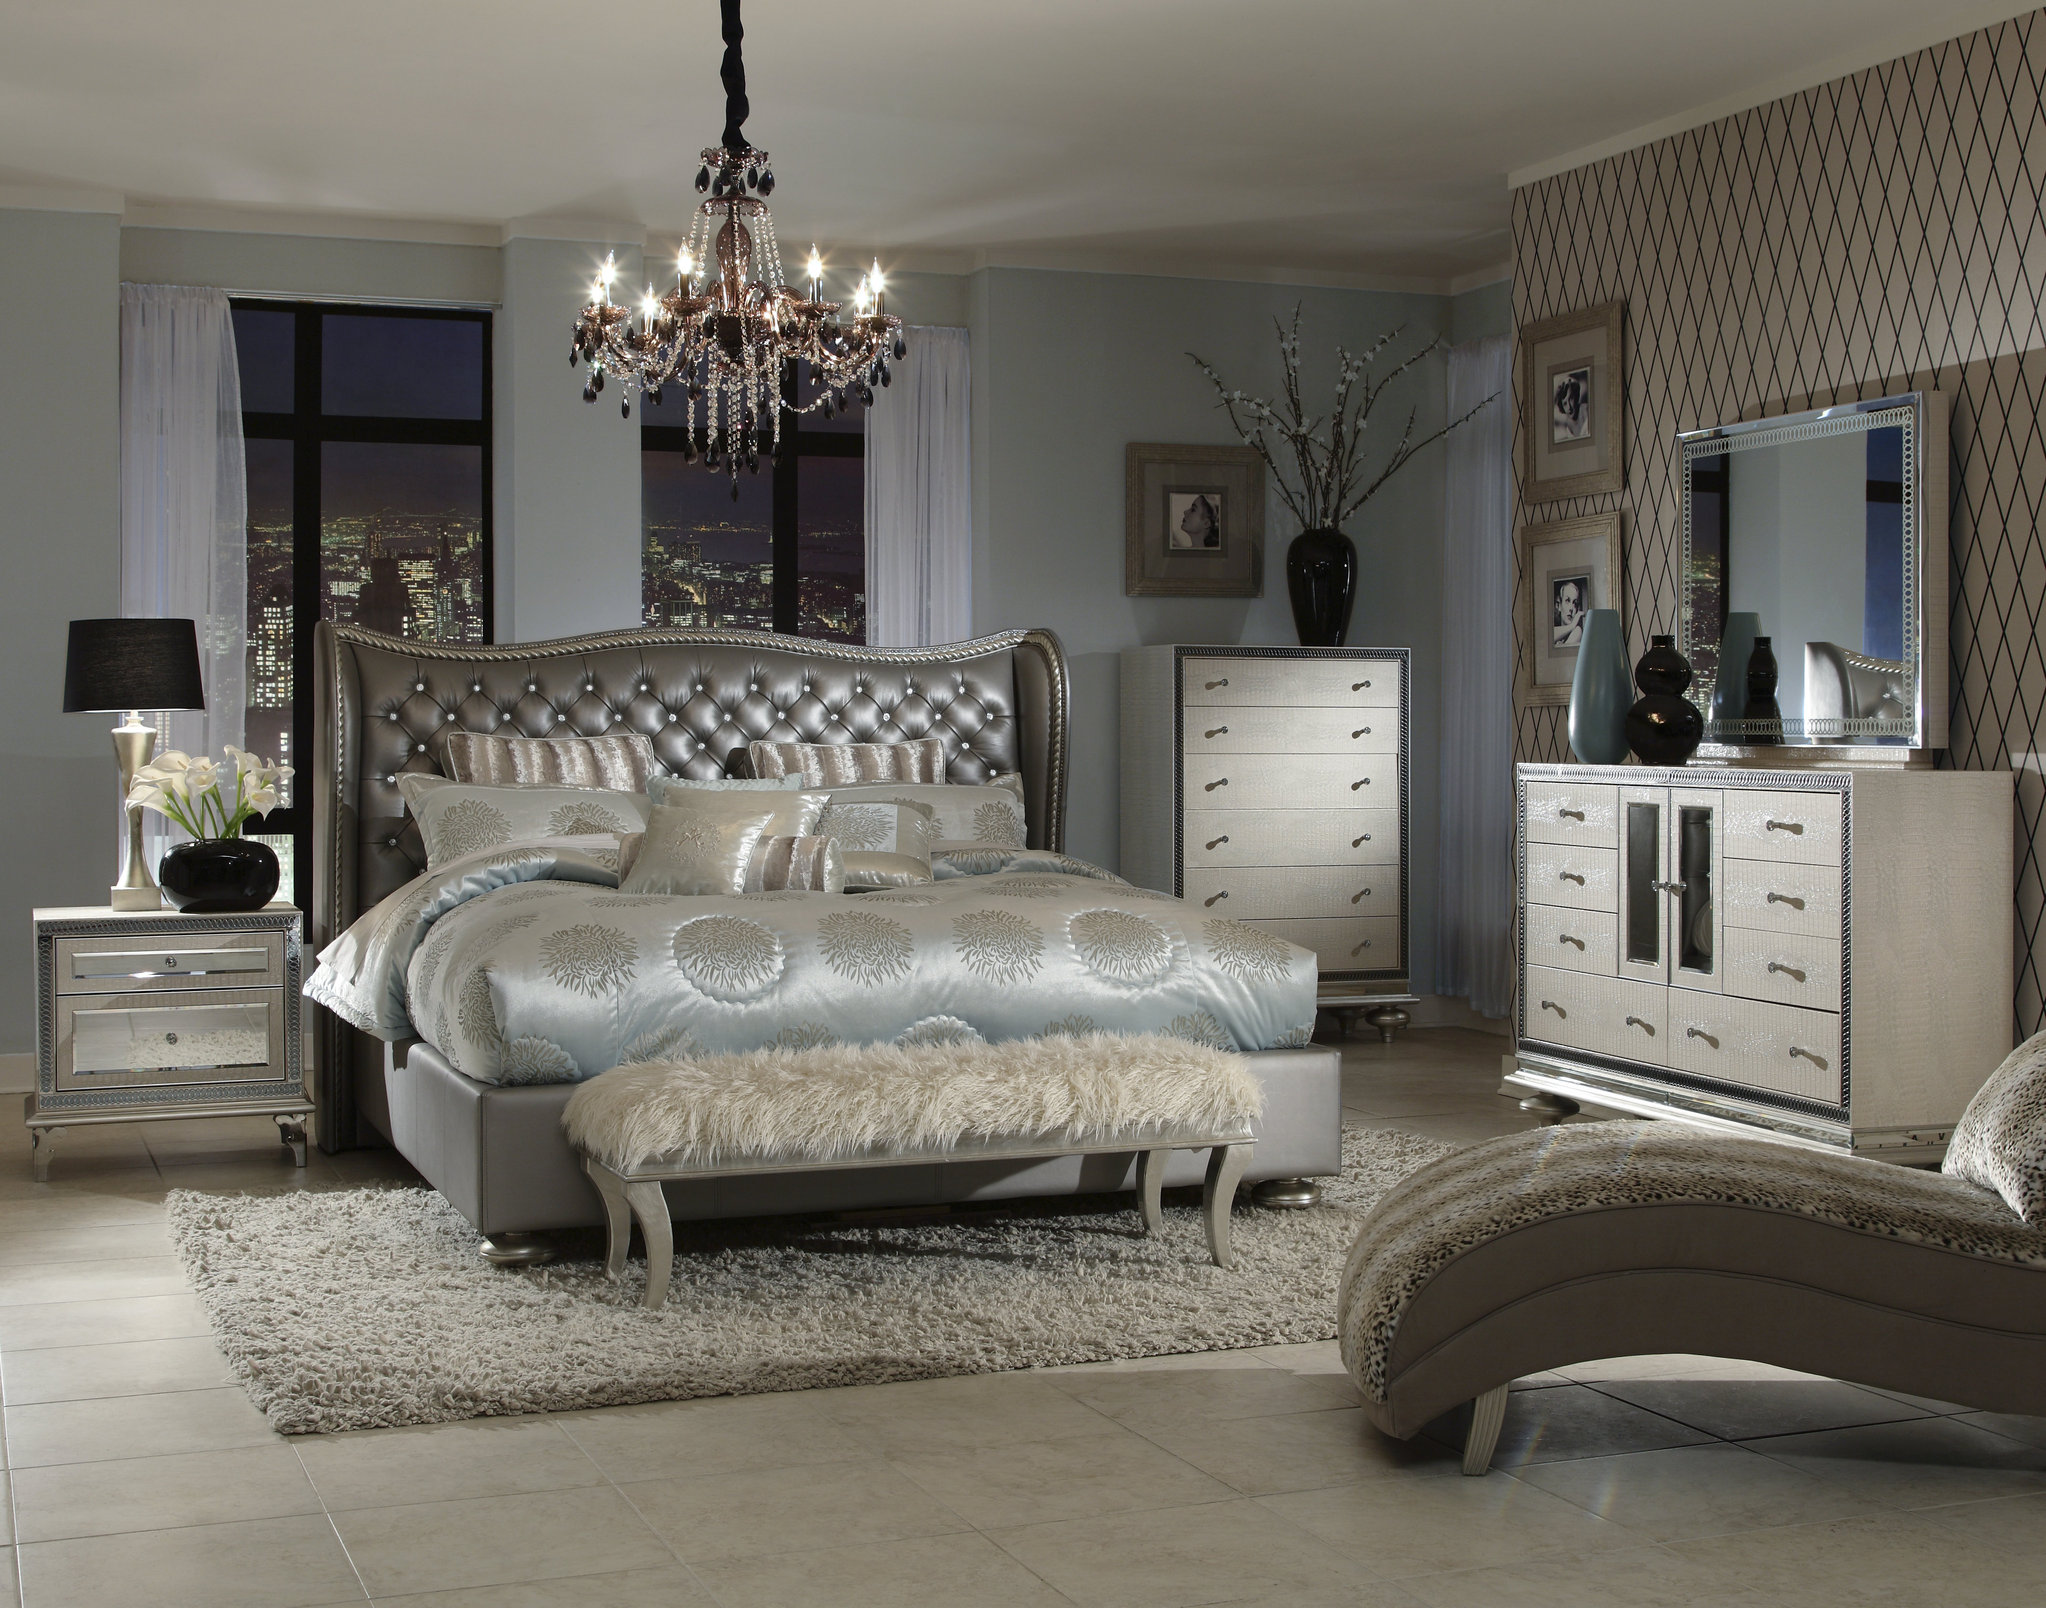 Bed Silver Design